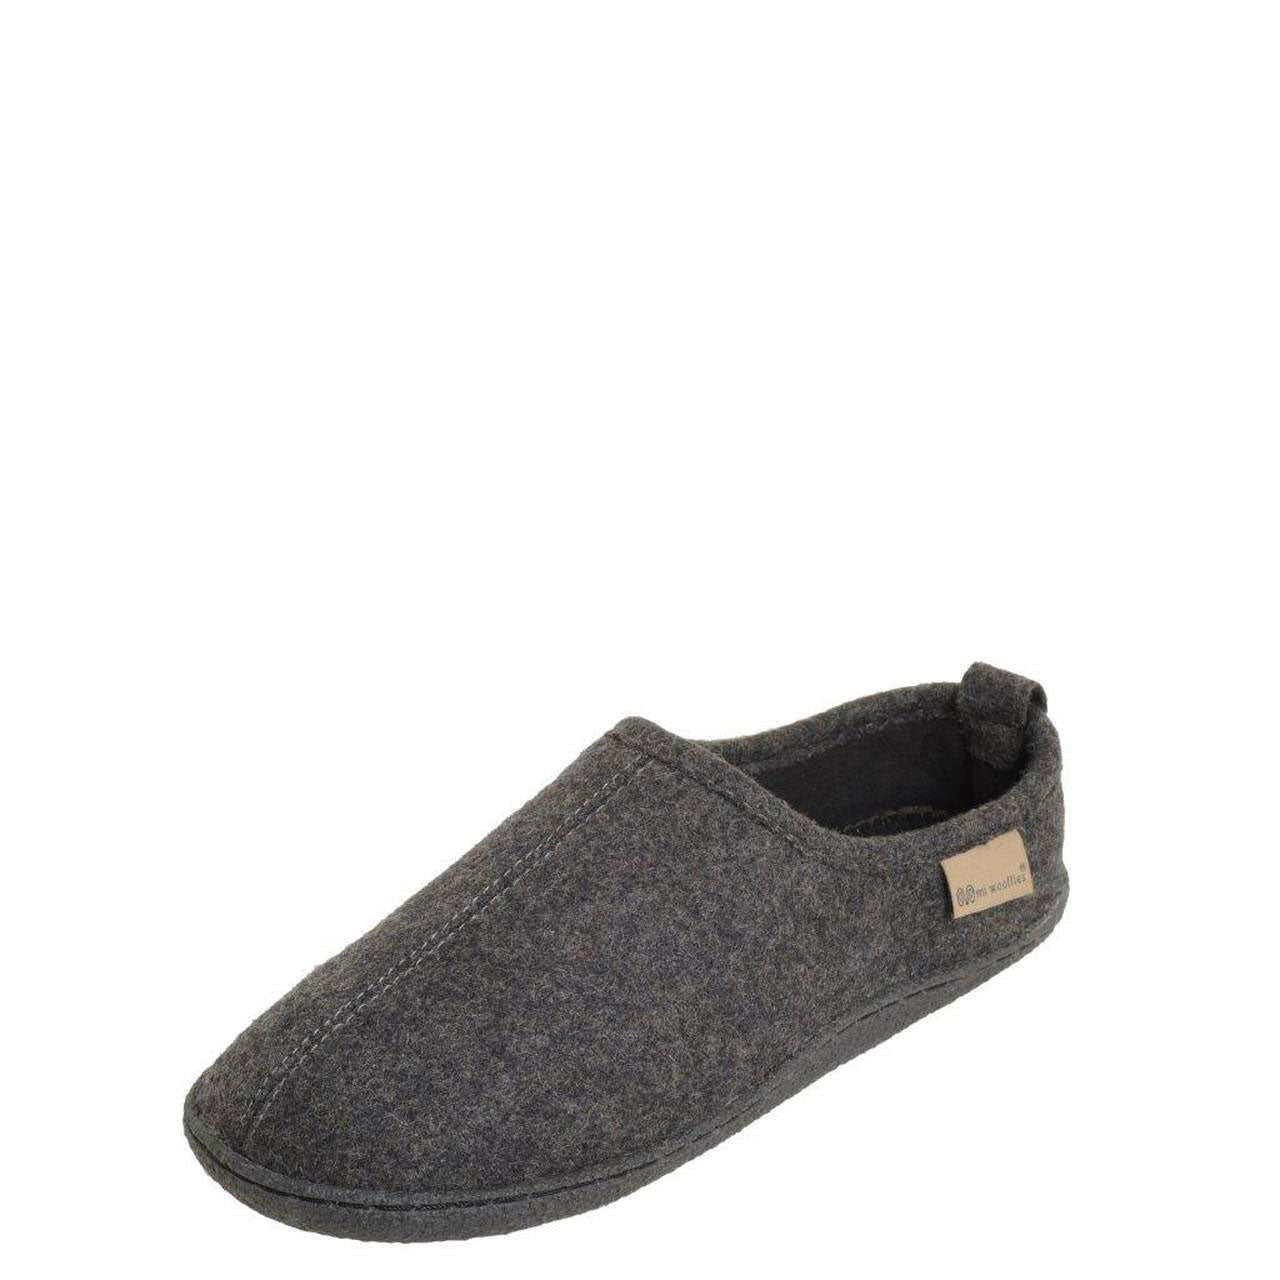 Mi Woollies Ash Slipper